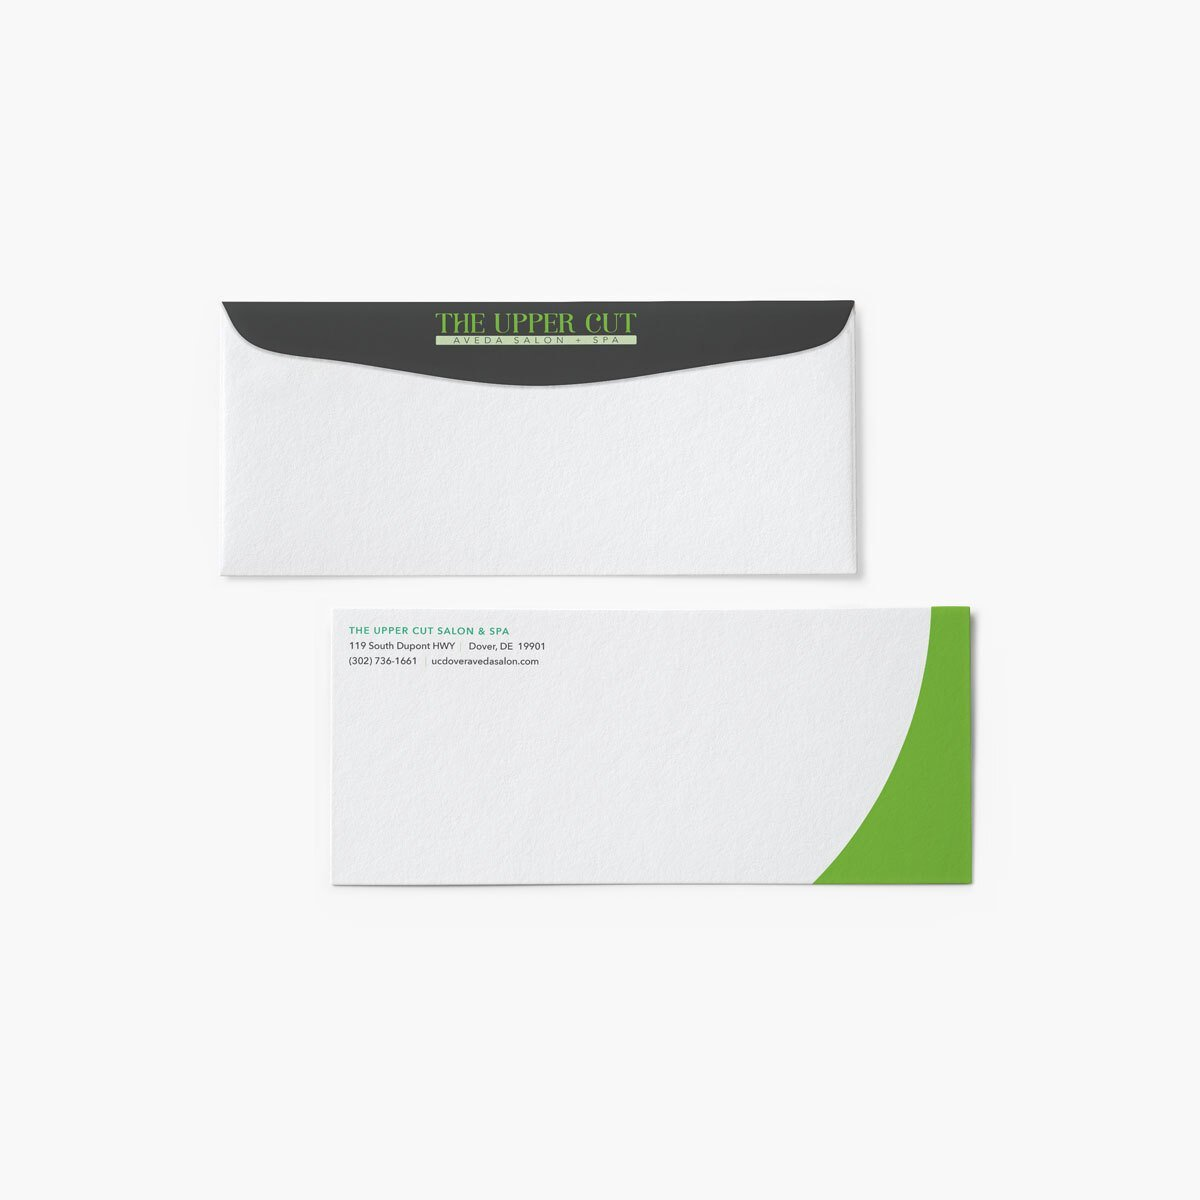 The Upper Cut Salon Envelope Design by BrandSwan, a graphic design company